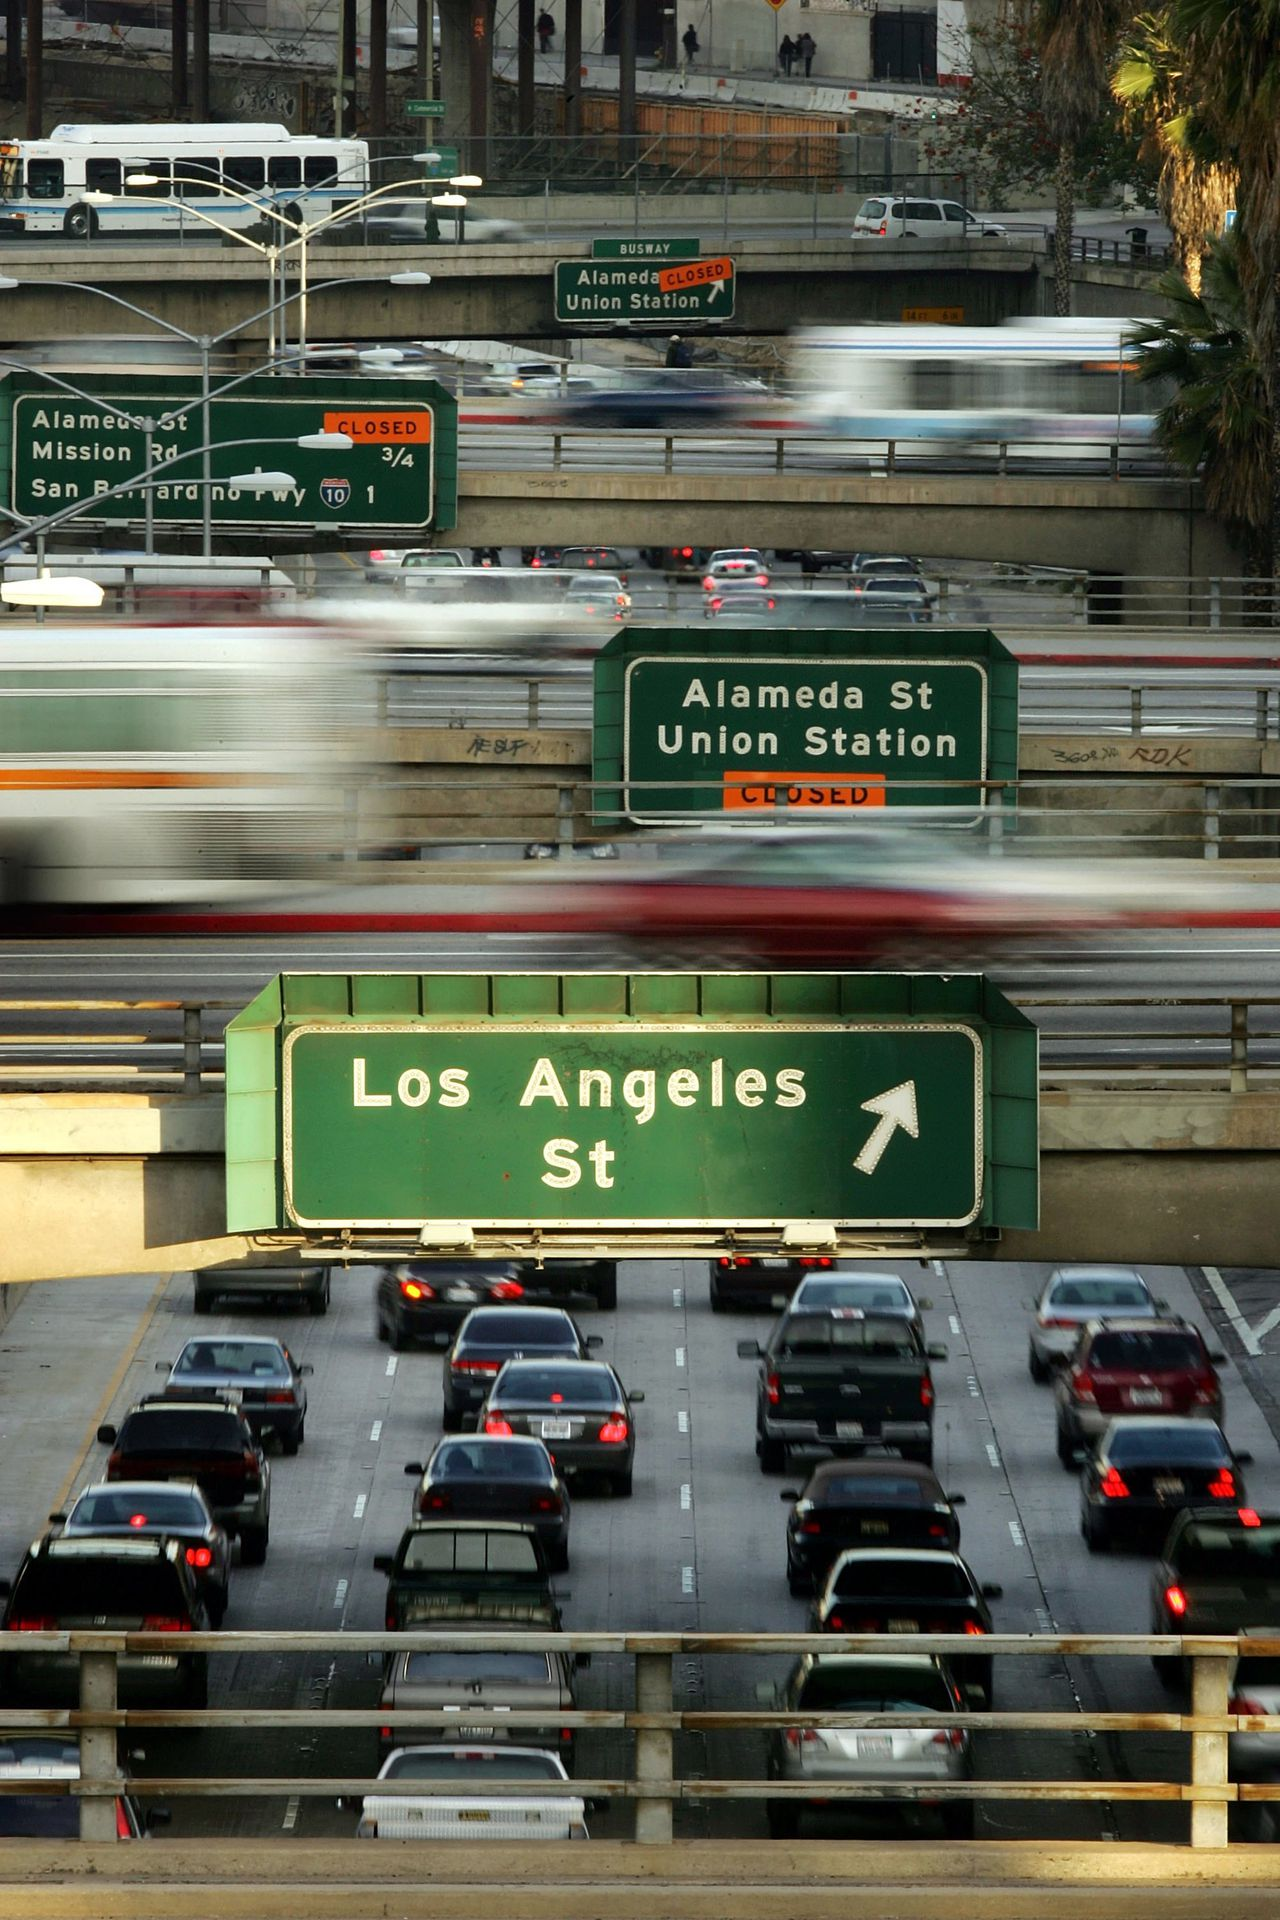 Correspondent Freek Staps (VS) verbaast zich over het tolsysteem op de snelwegen van Los Angeles Californië. Rush hour traffic clogs the 101 freeway and overpasses 22 March 2006 in Los Angeles, California. According to a recent report by the Environmental Protection Agency (EPA), Los Angeles ranks only behind New York with the dirtiest and most hazardous air to breathe. Although Angelinos breathe cleaner air than they did in the 1970's, they face a cancer risk that is about twice the national average. David McNew/Getty Images/AFP =FOR NEWSPAPER AND TV USE ONLY= MORE PHOTOS ON IMAGEFORUM